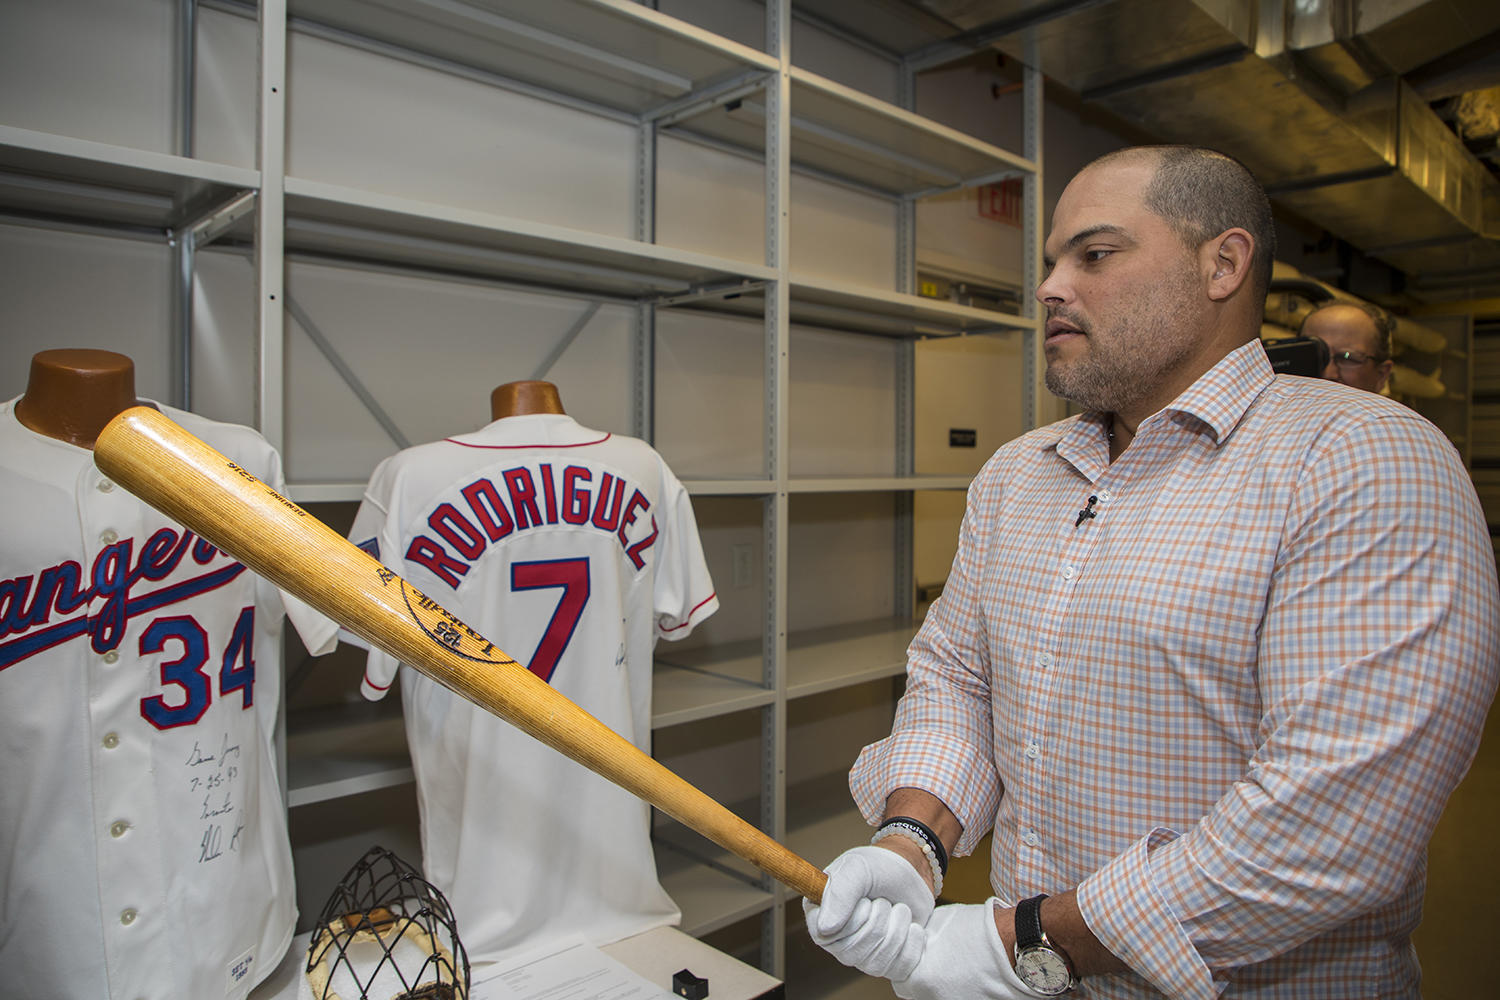 Iván Rodríguez examines Johnny Bench's bat, used during the 1980 season, during his Orientation Tour of the Hall of Fame. (Milo Stewart Jr. / National Baseball Hall of Fame)